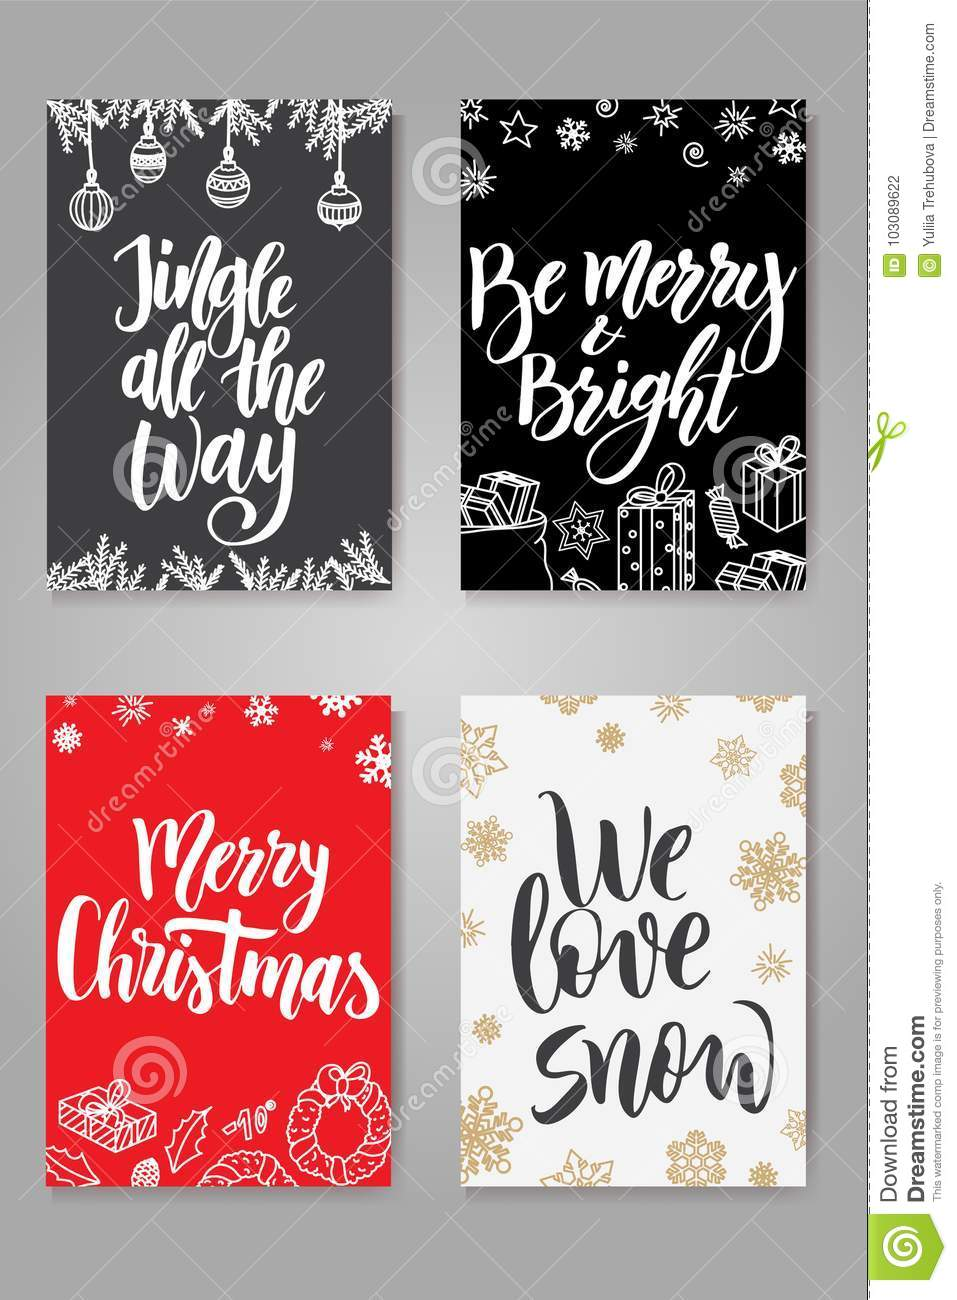 Christmas Gift Card Poster.Set Of Cute Christmas Cards Posters Collection Vector